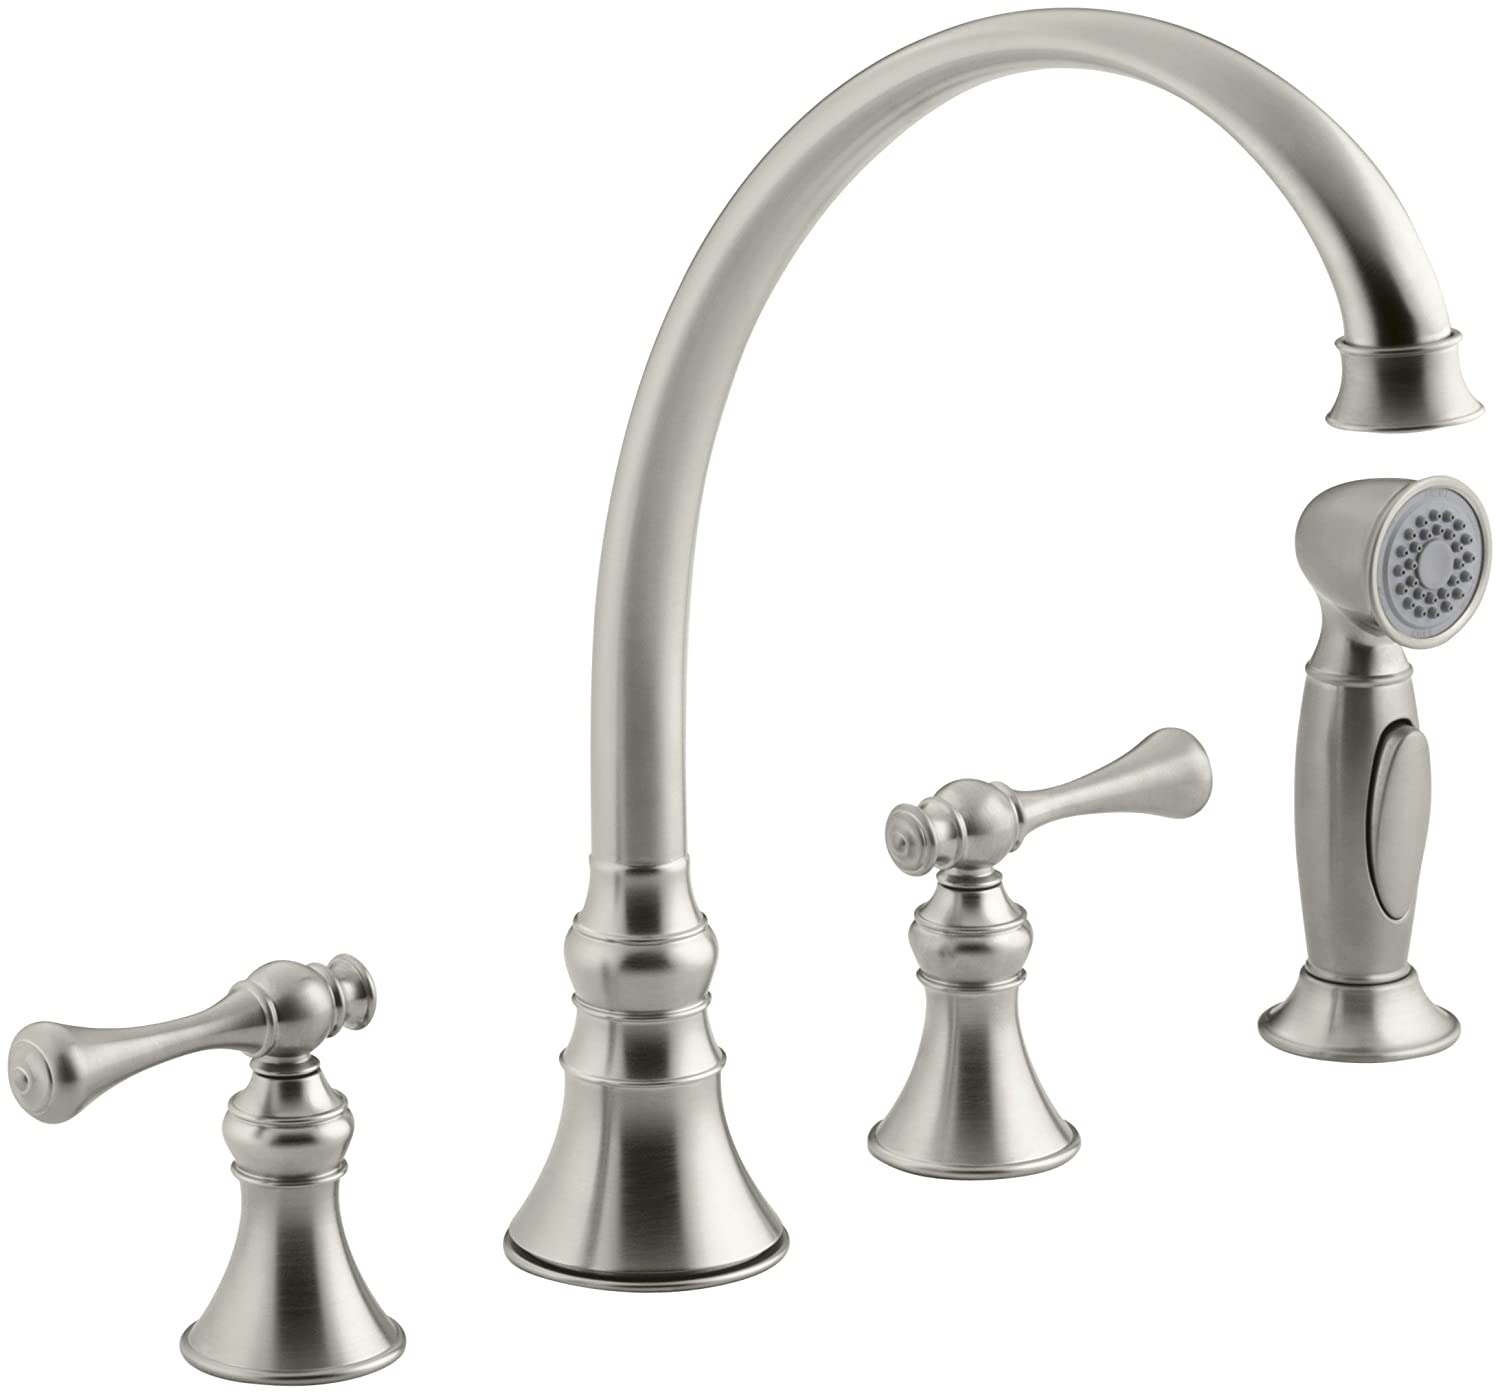 KOHLER K 16109 4A BN Revival Kitchen Sink Faucet, Vibrant Brushed Nickel    Touch On Kitchen Sink Faucets   Amazon.com